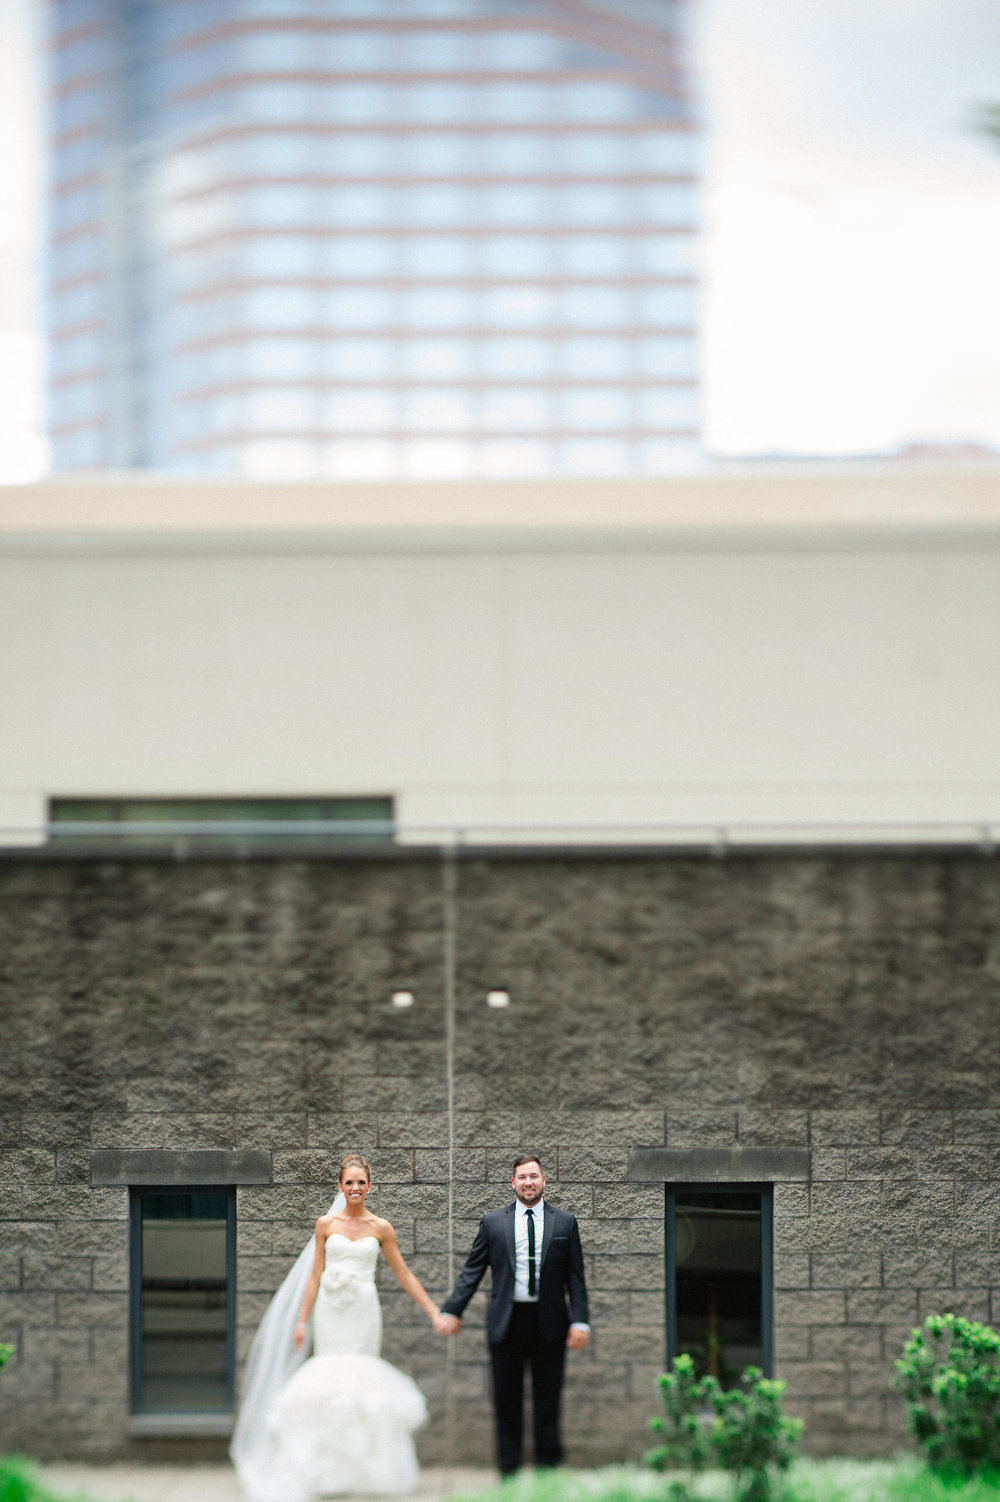 shelby&jordan|smitten&hooked|wedding|firstlook-058.jpg